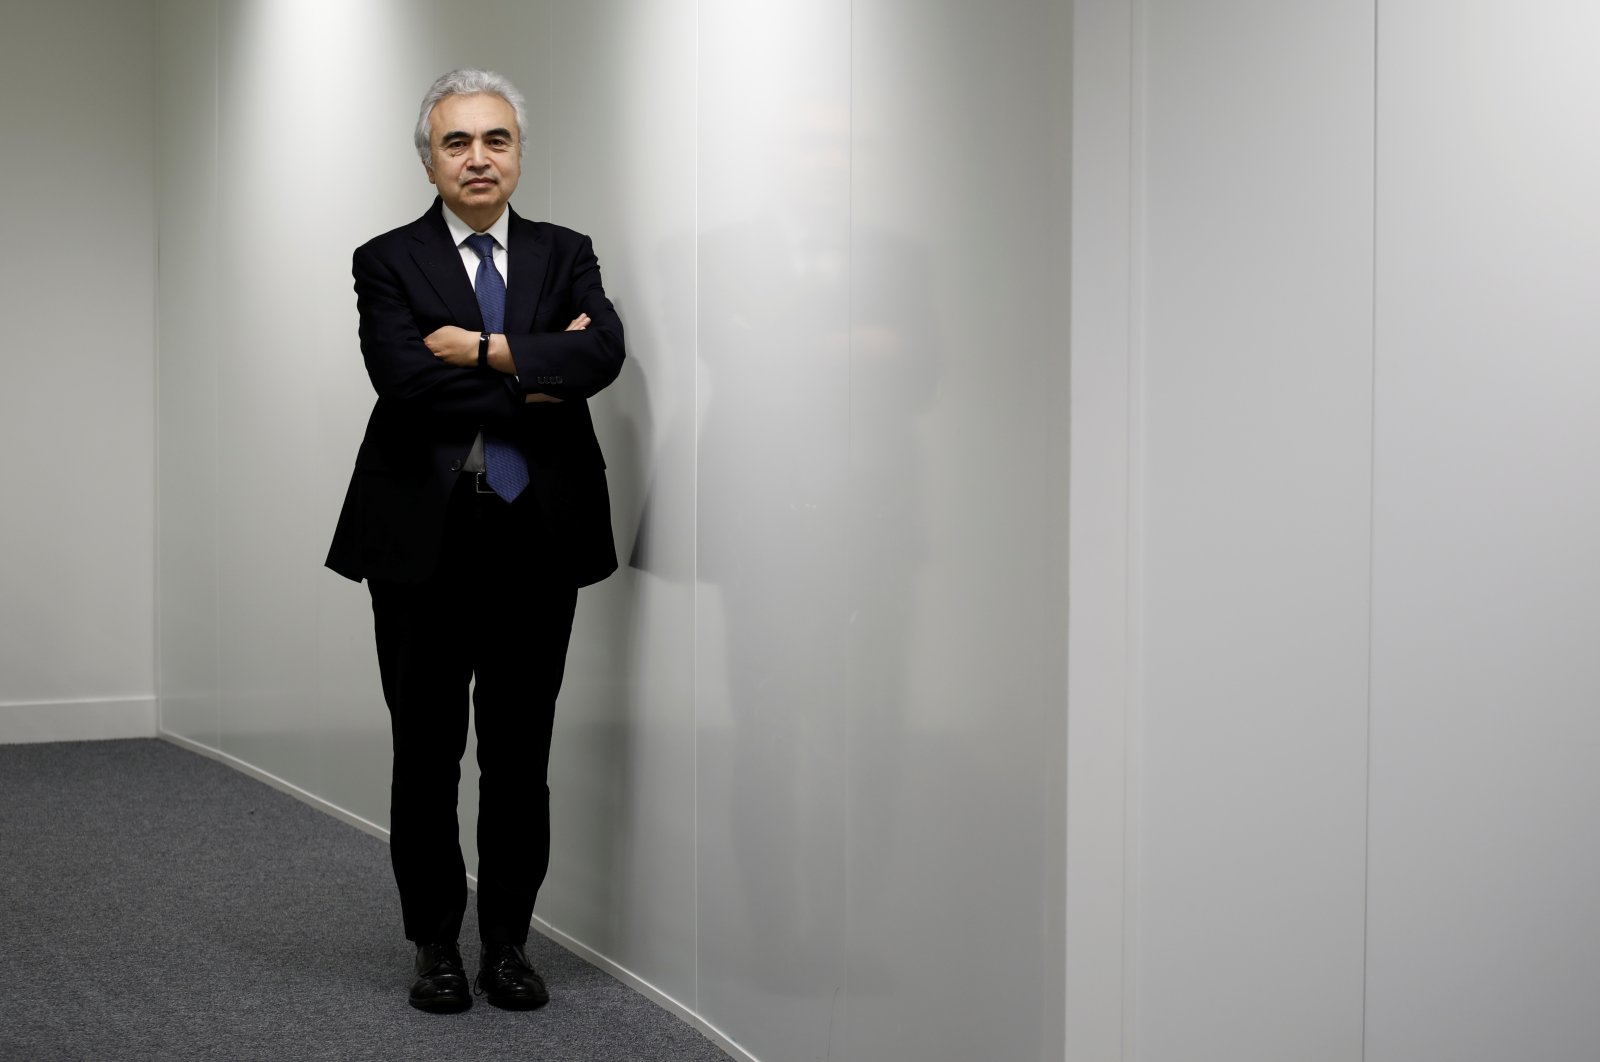 Fatih Birol, executive director of the International Energy Agency (IEA), poses for a portrait at their offices in Paris, France, Nov. 7, 2019. (Reuters Photo)